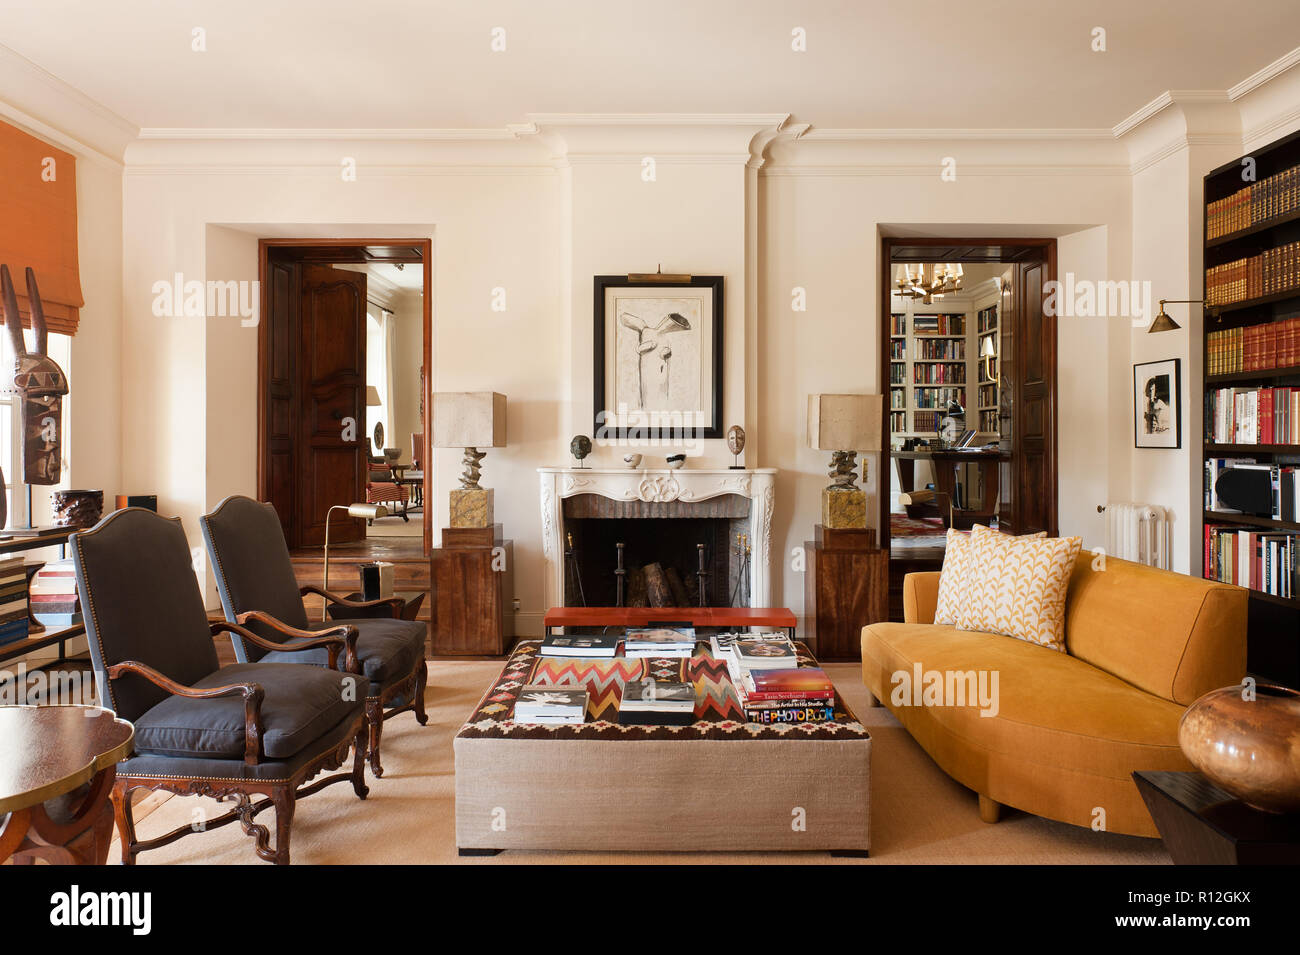 Masculine Living Room With Fireplace Stock Photo 224406446 Alamy